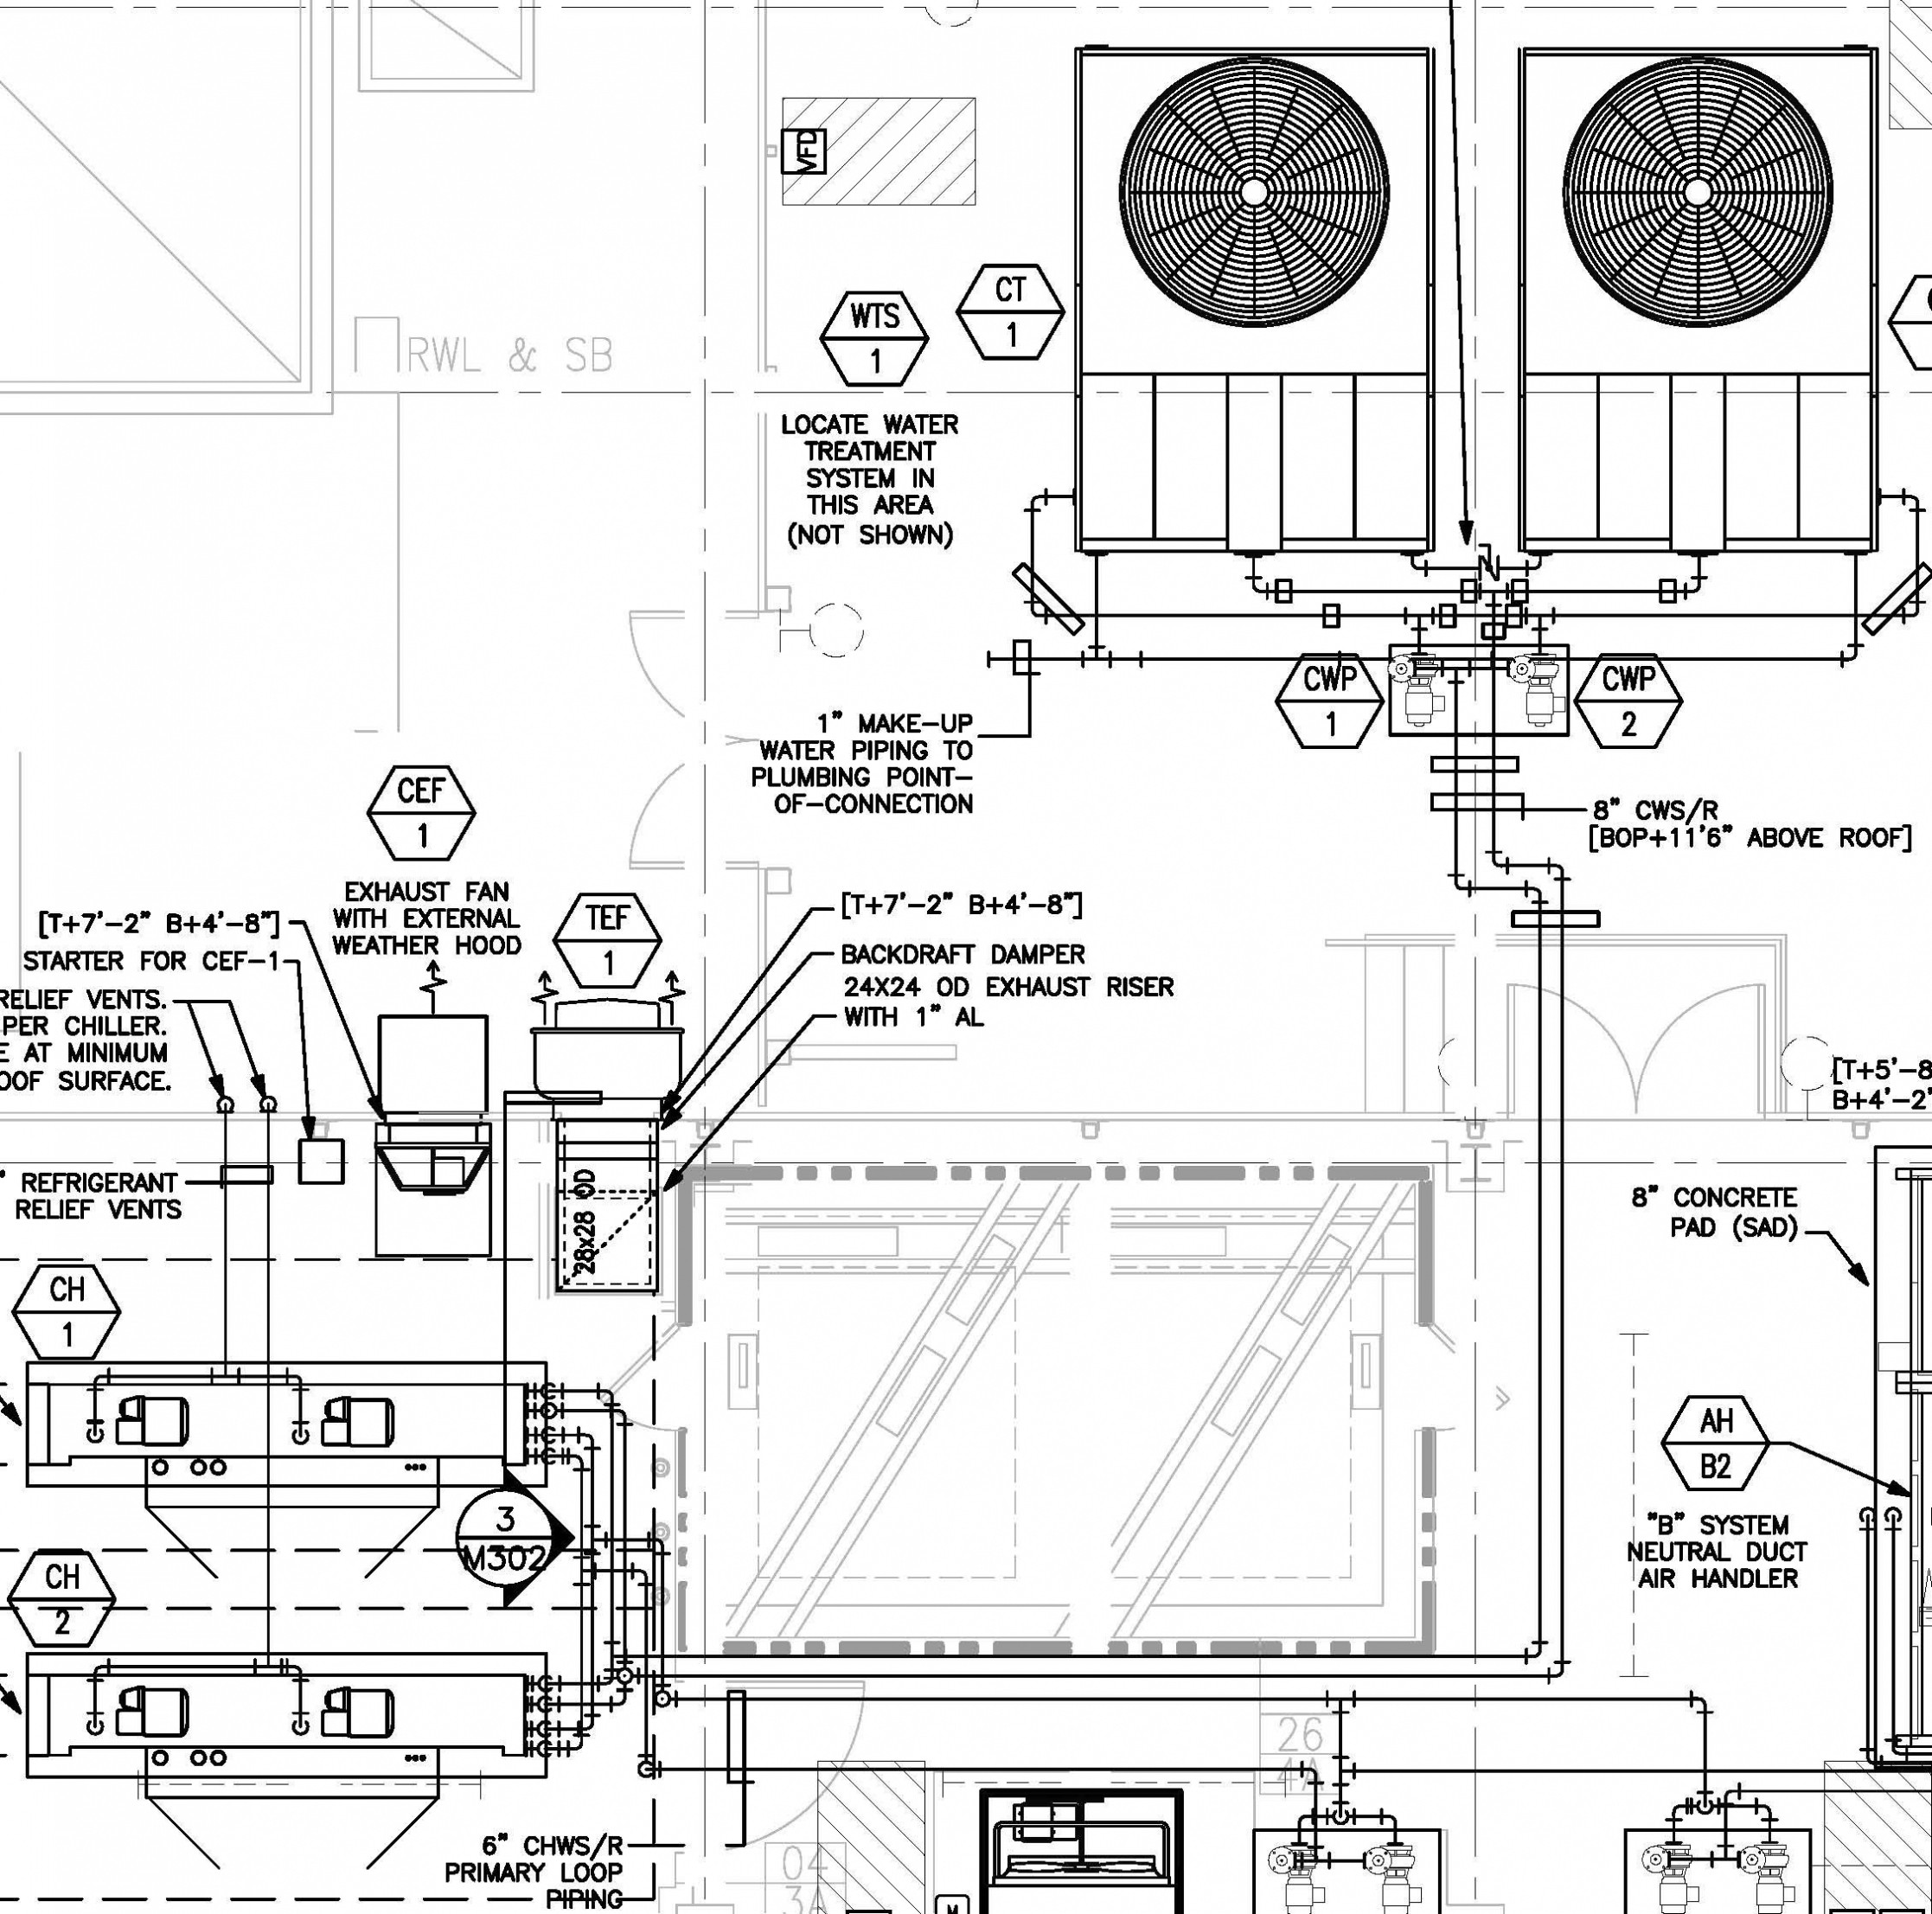 Vehicle Ac System Diagram Car Ac Air Duct Diagram Wiring Schematics Diagram